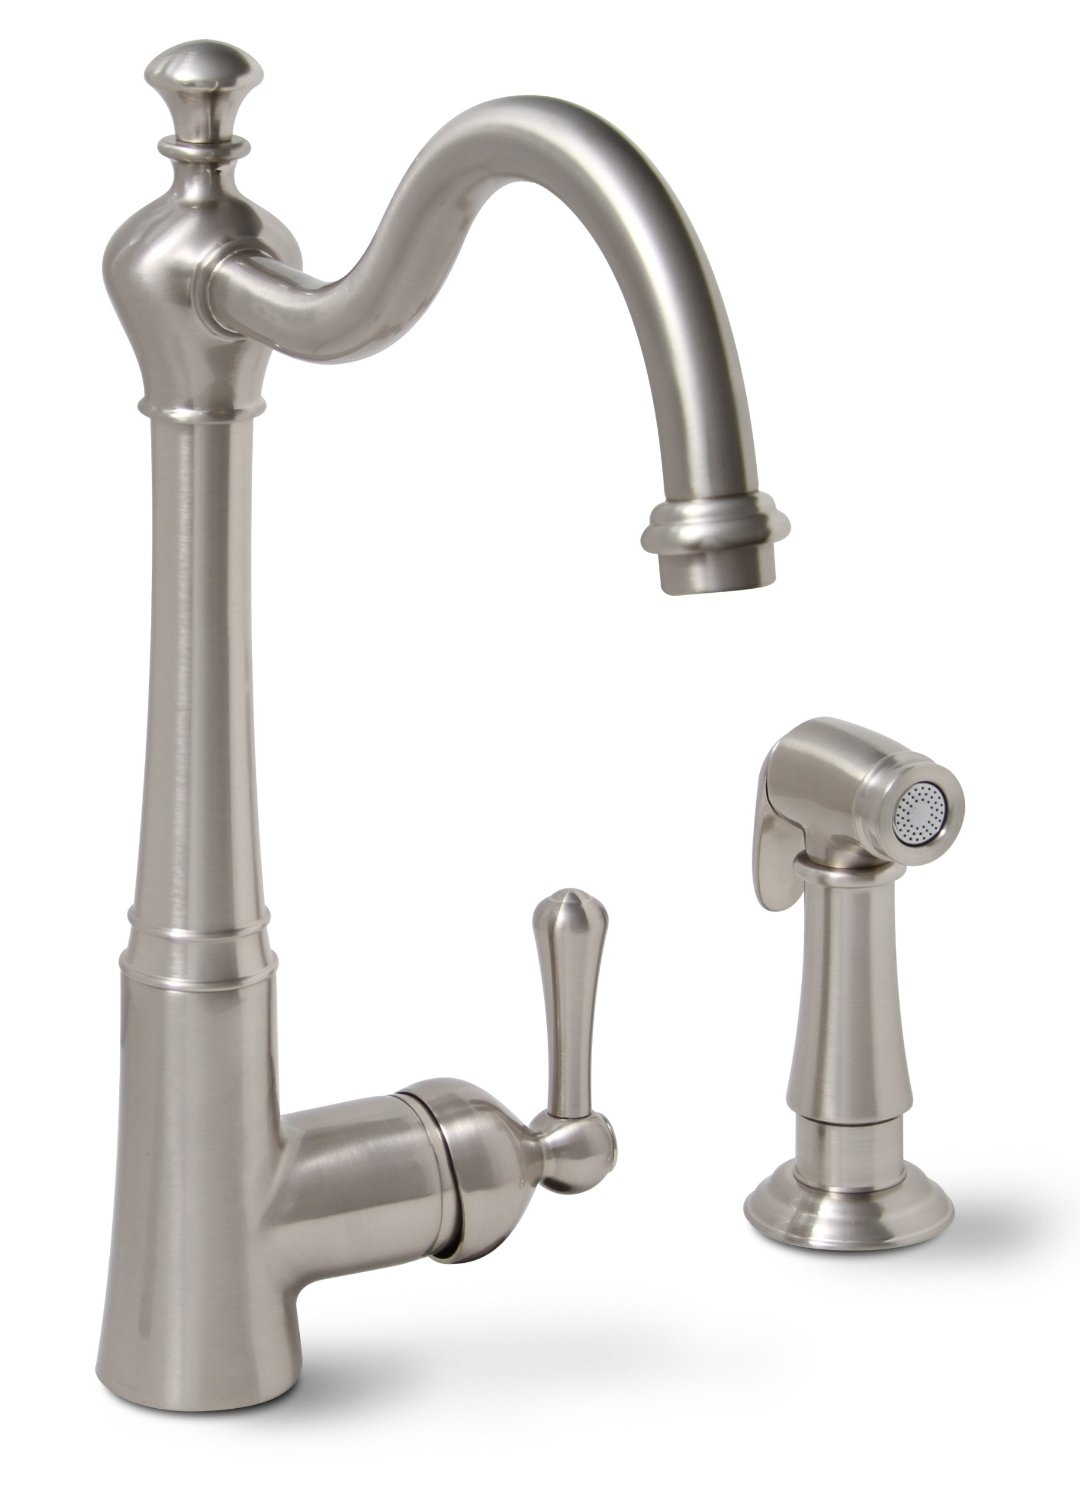 corrego high rise kitchen faucet brushed finish corrego high rise kitchen faucet brushed finish kitchen faucets kitchen faucets grohe minta kitchen faucet 1080 x 1500